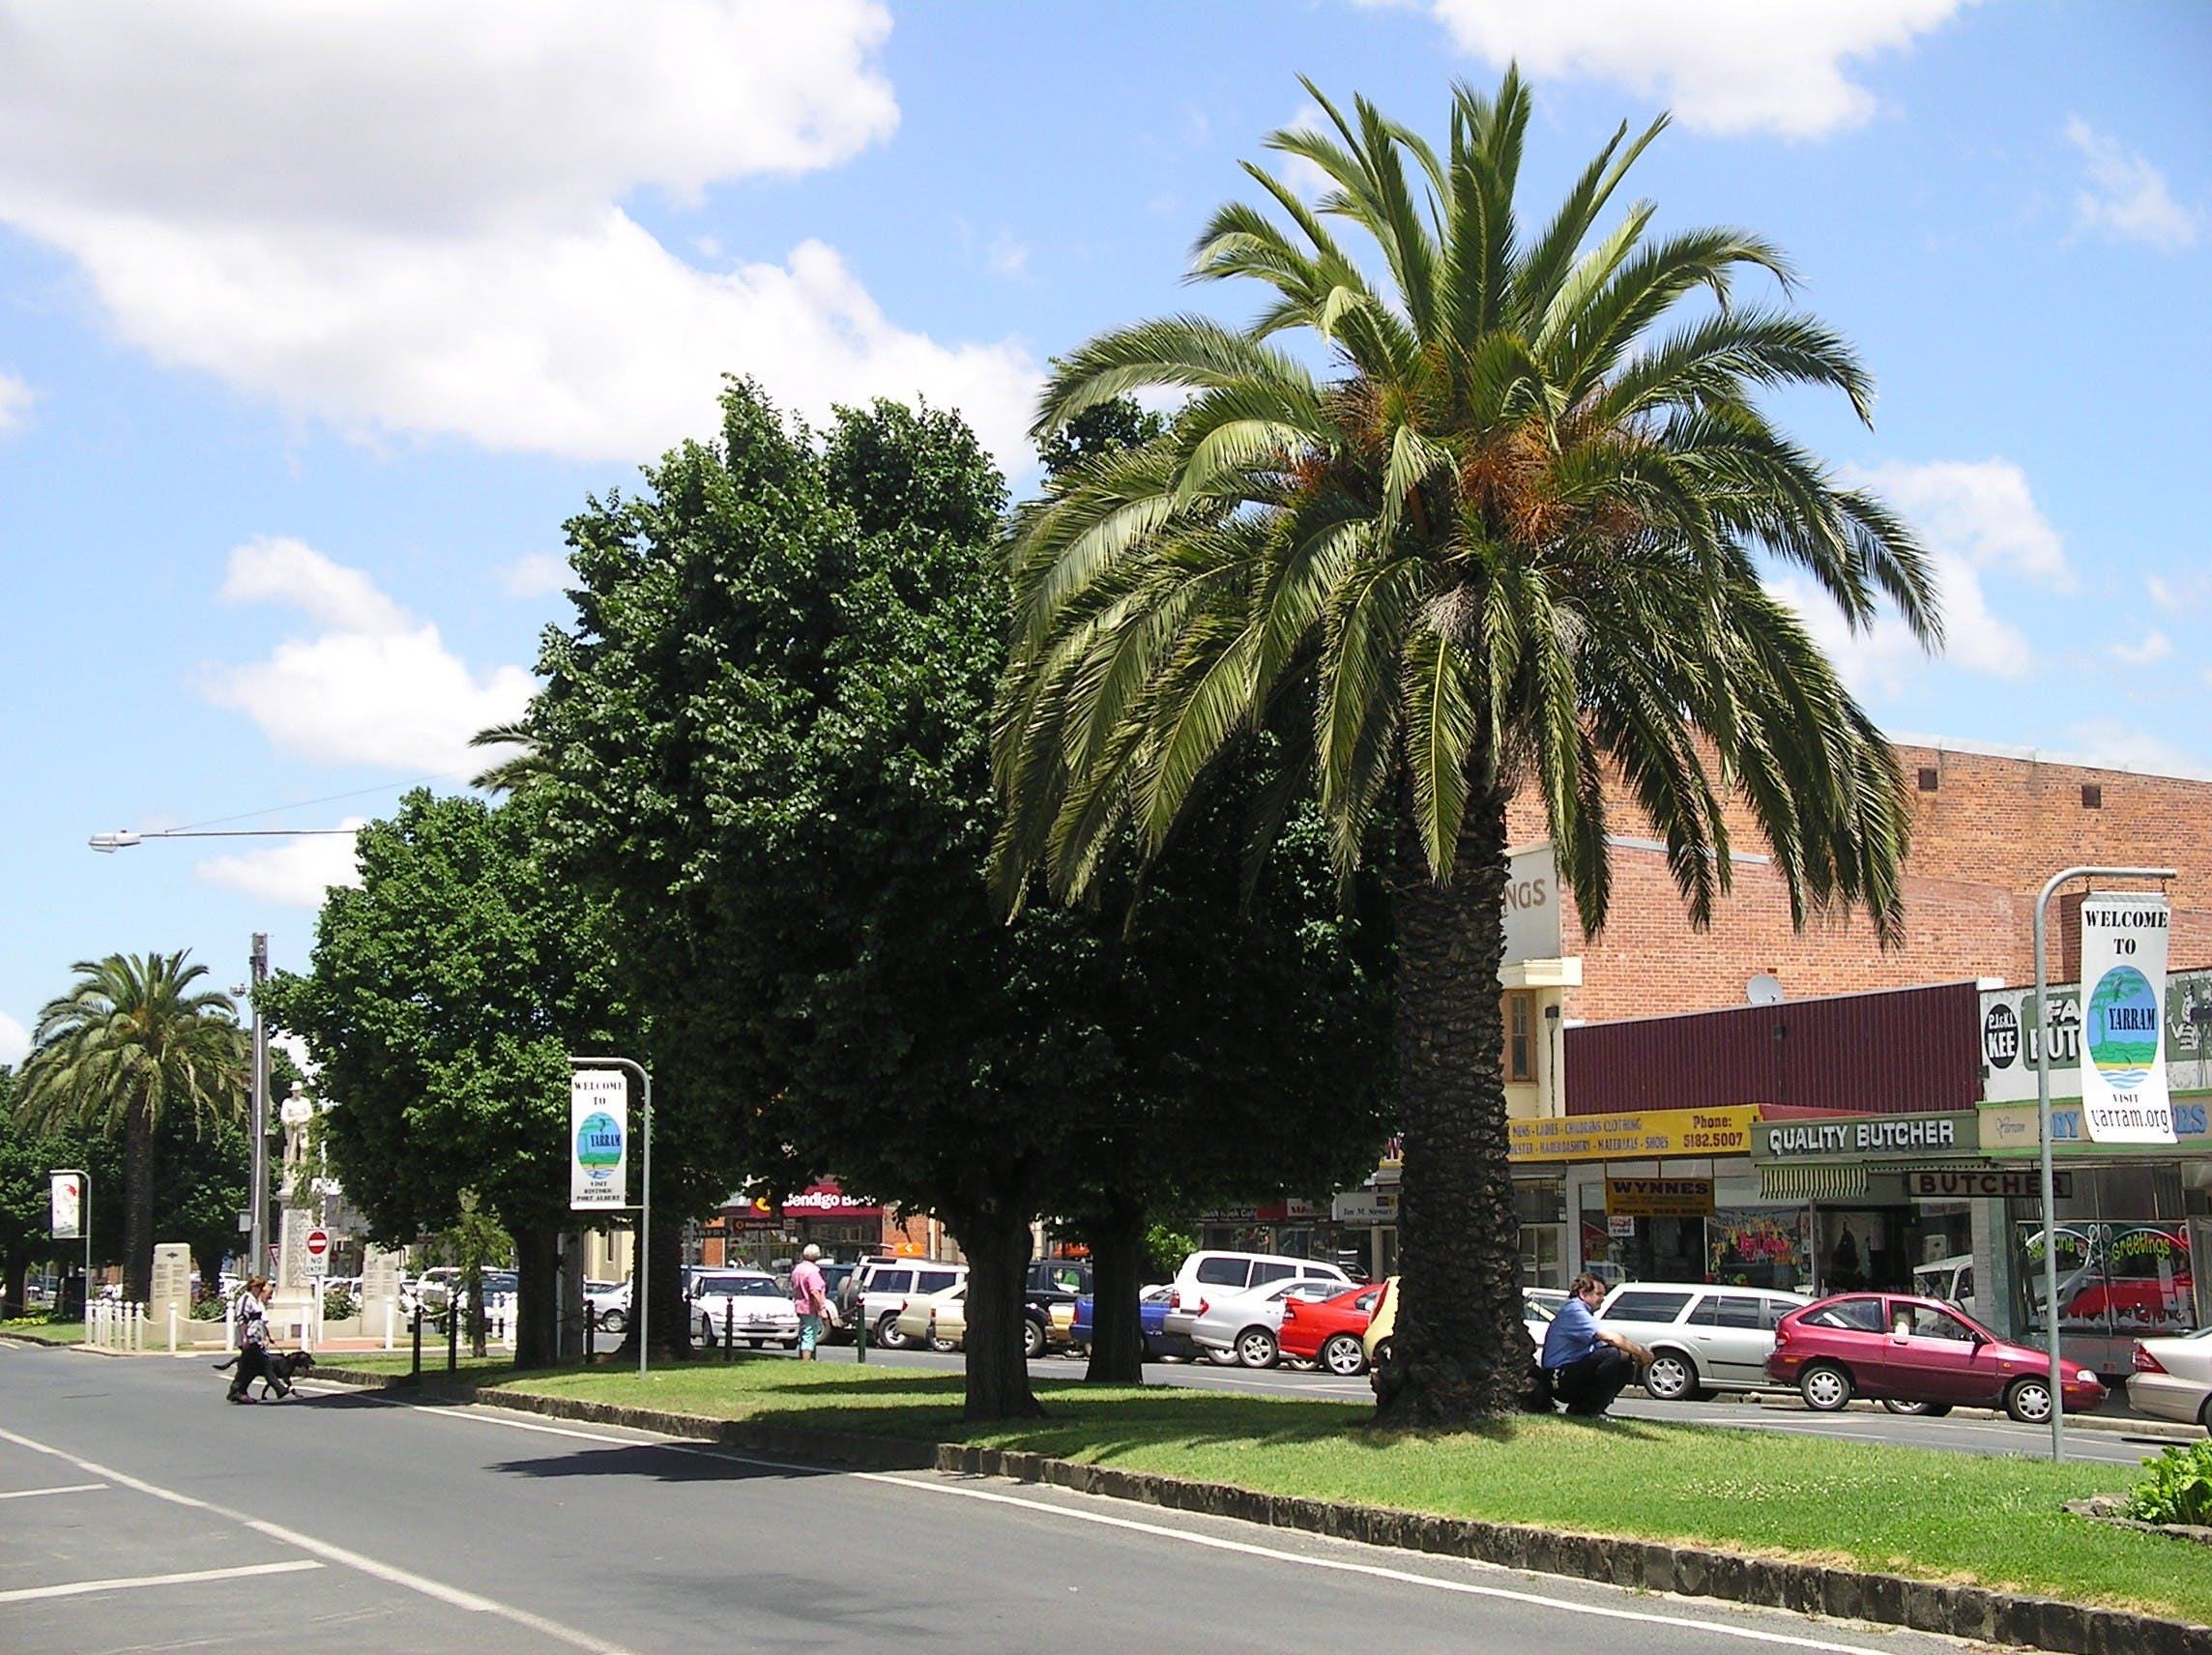 Yarram Historical Society - Taree Accommodation